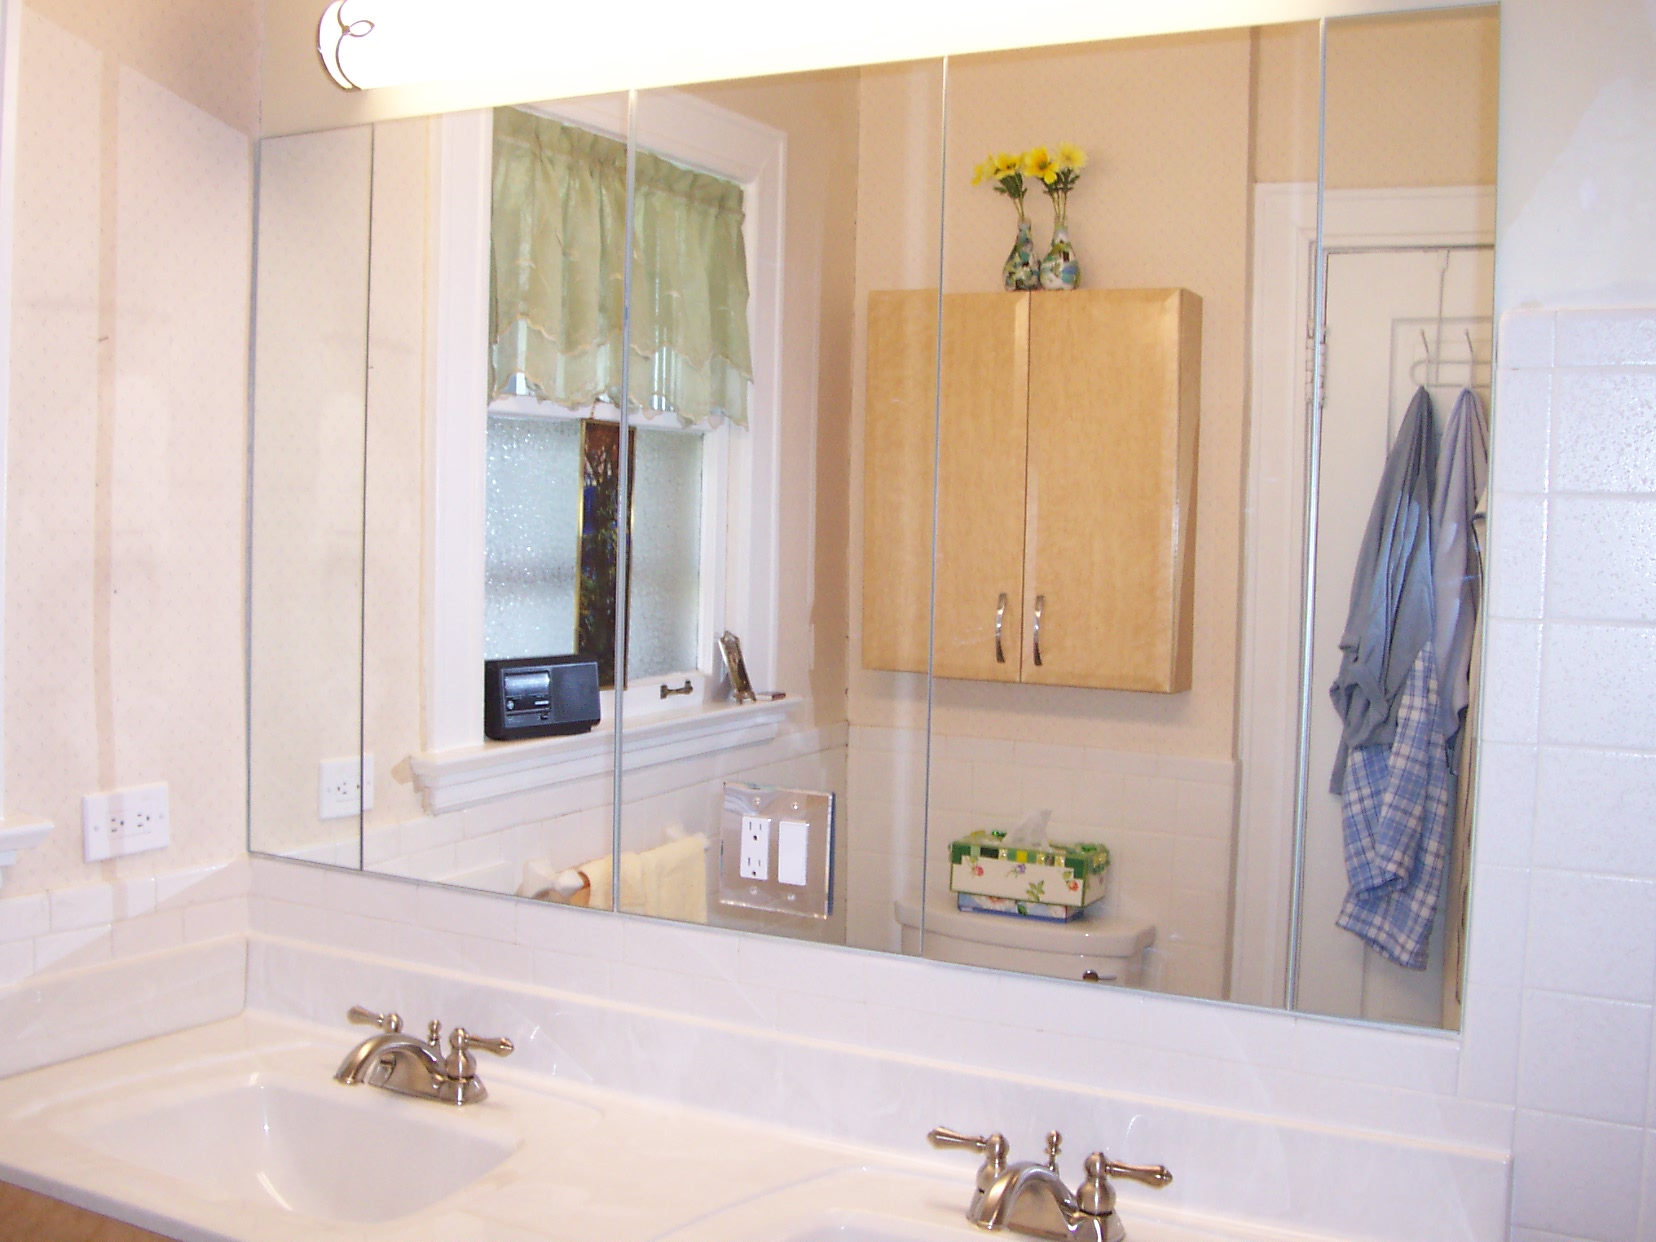 Seven piece 1/4 inch beveled mirror adds carachter to this hallway.